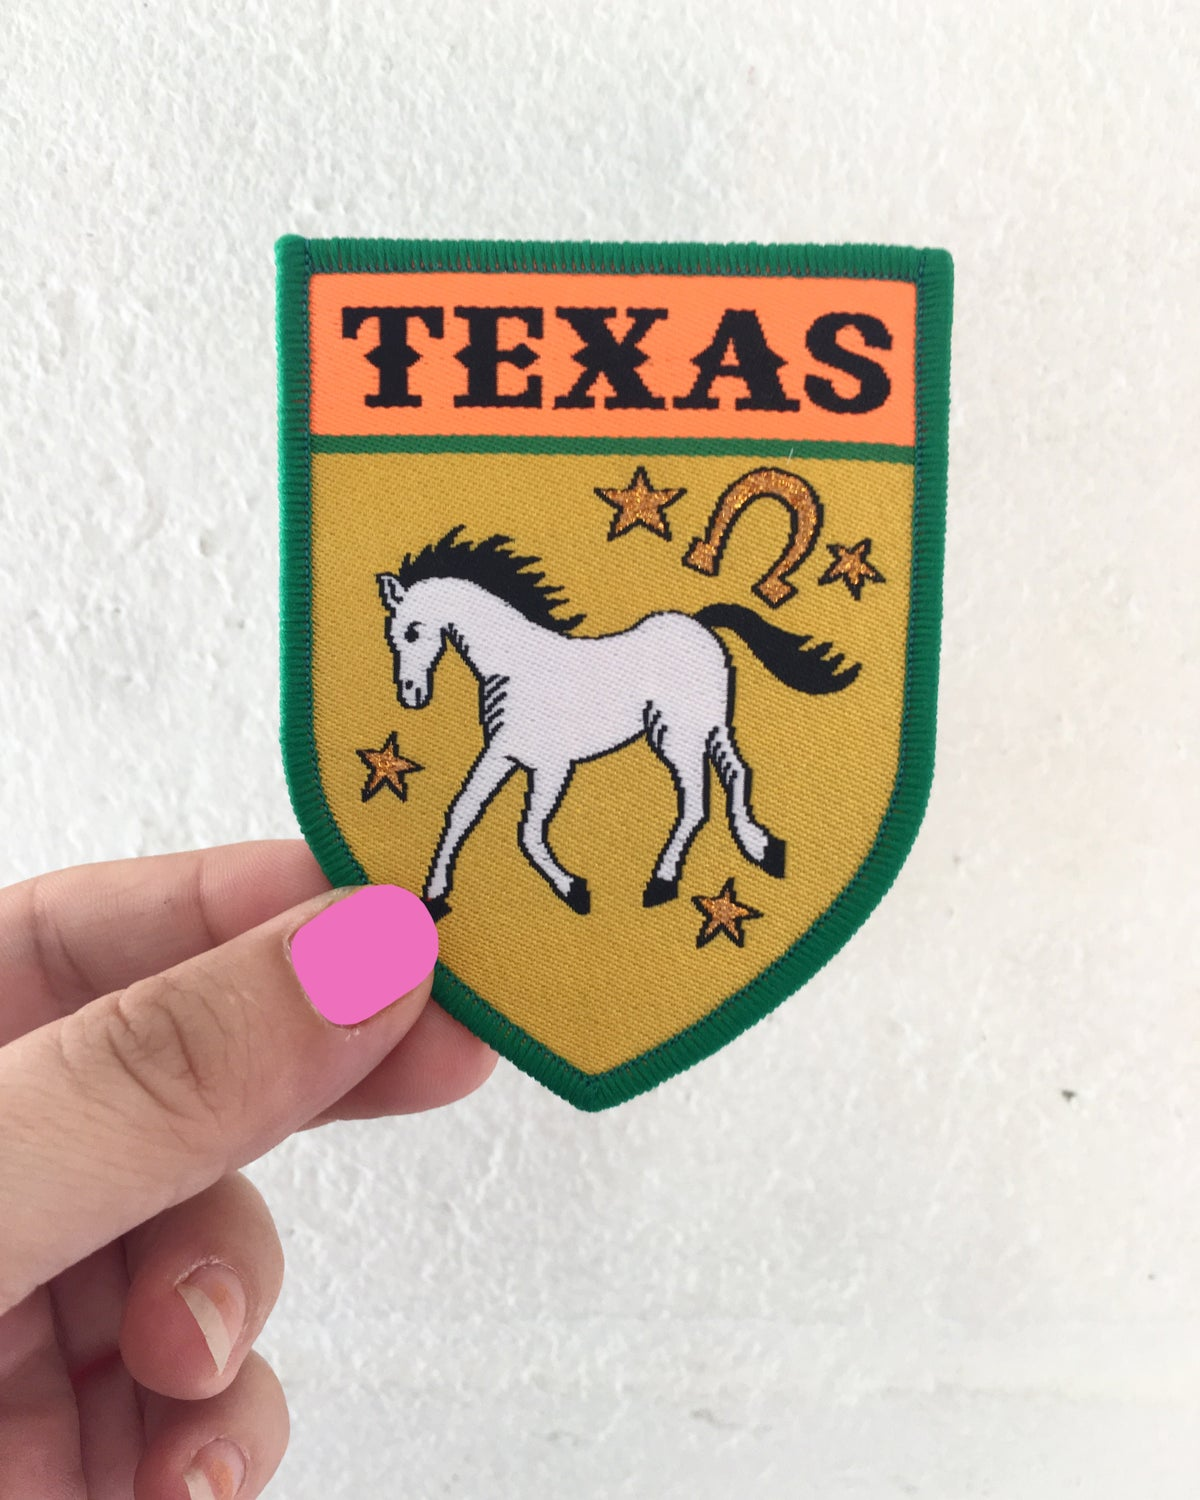 Texas iron on Travel Patch